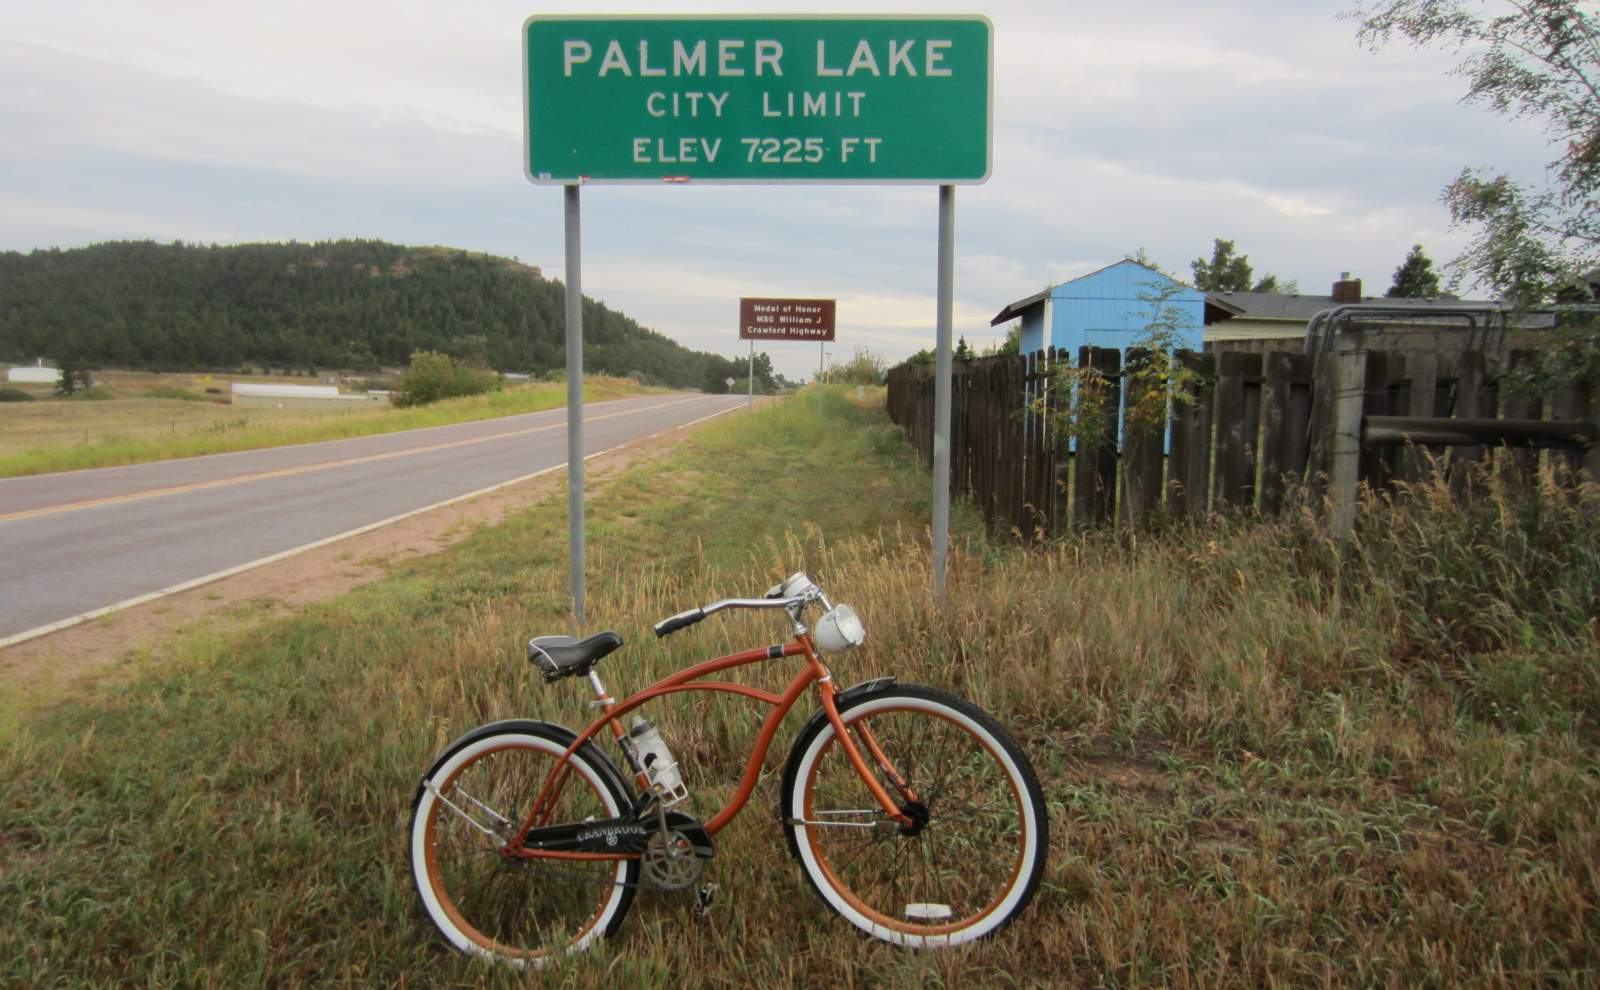 [Day 1, Mile 123, 6:00p] Made it to Palmer Lake, the high point of the ride at 7225 feet.